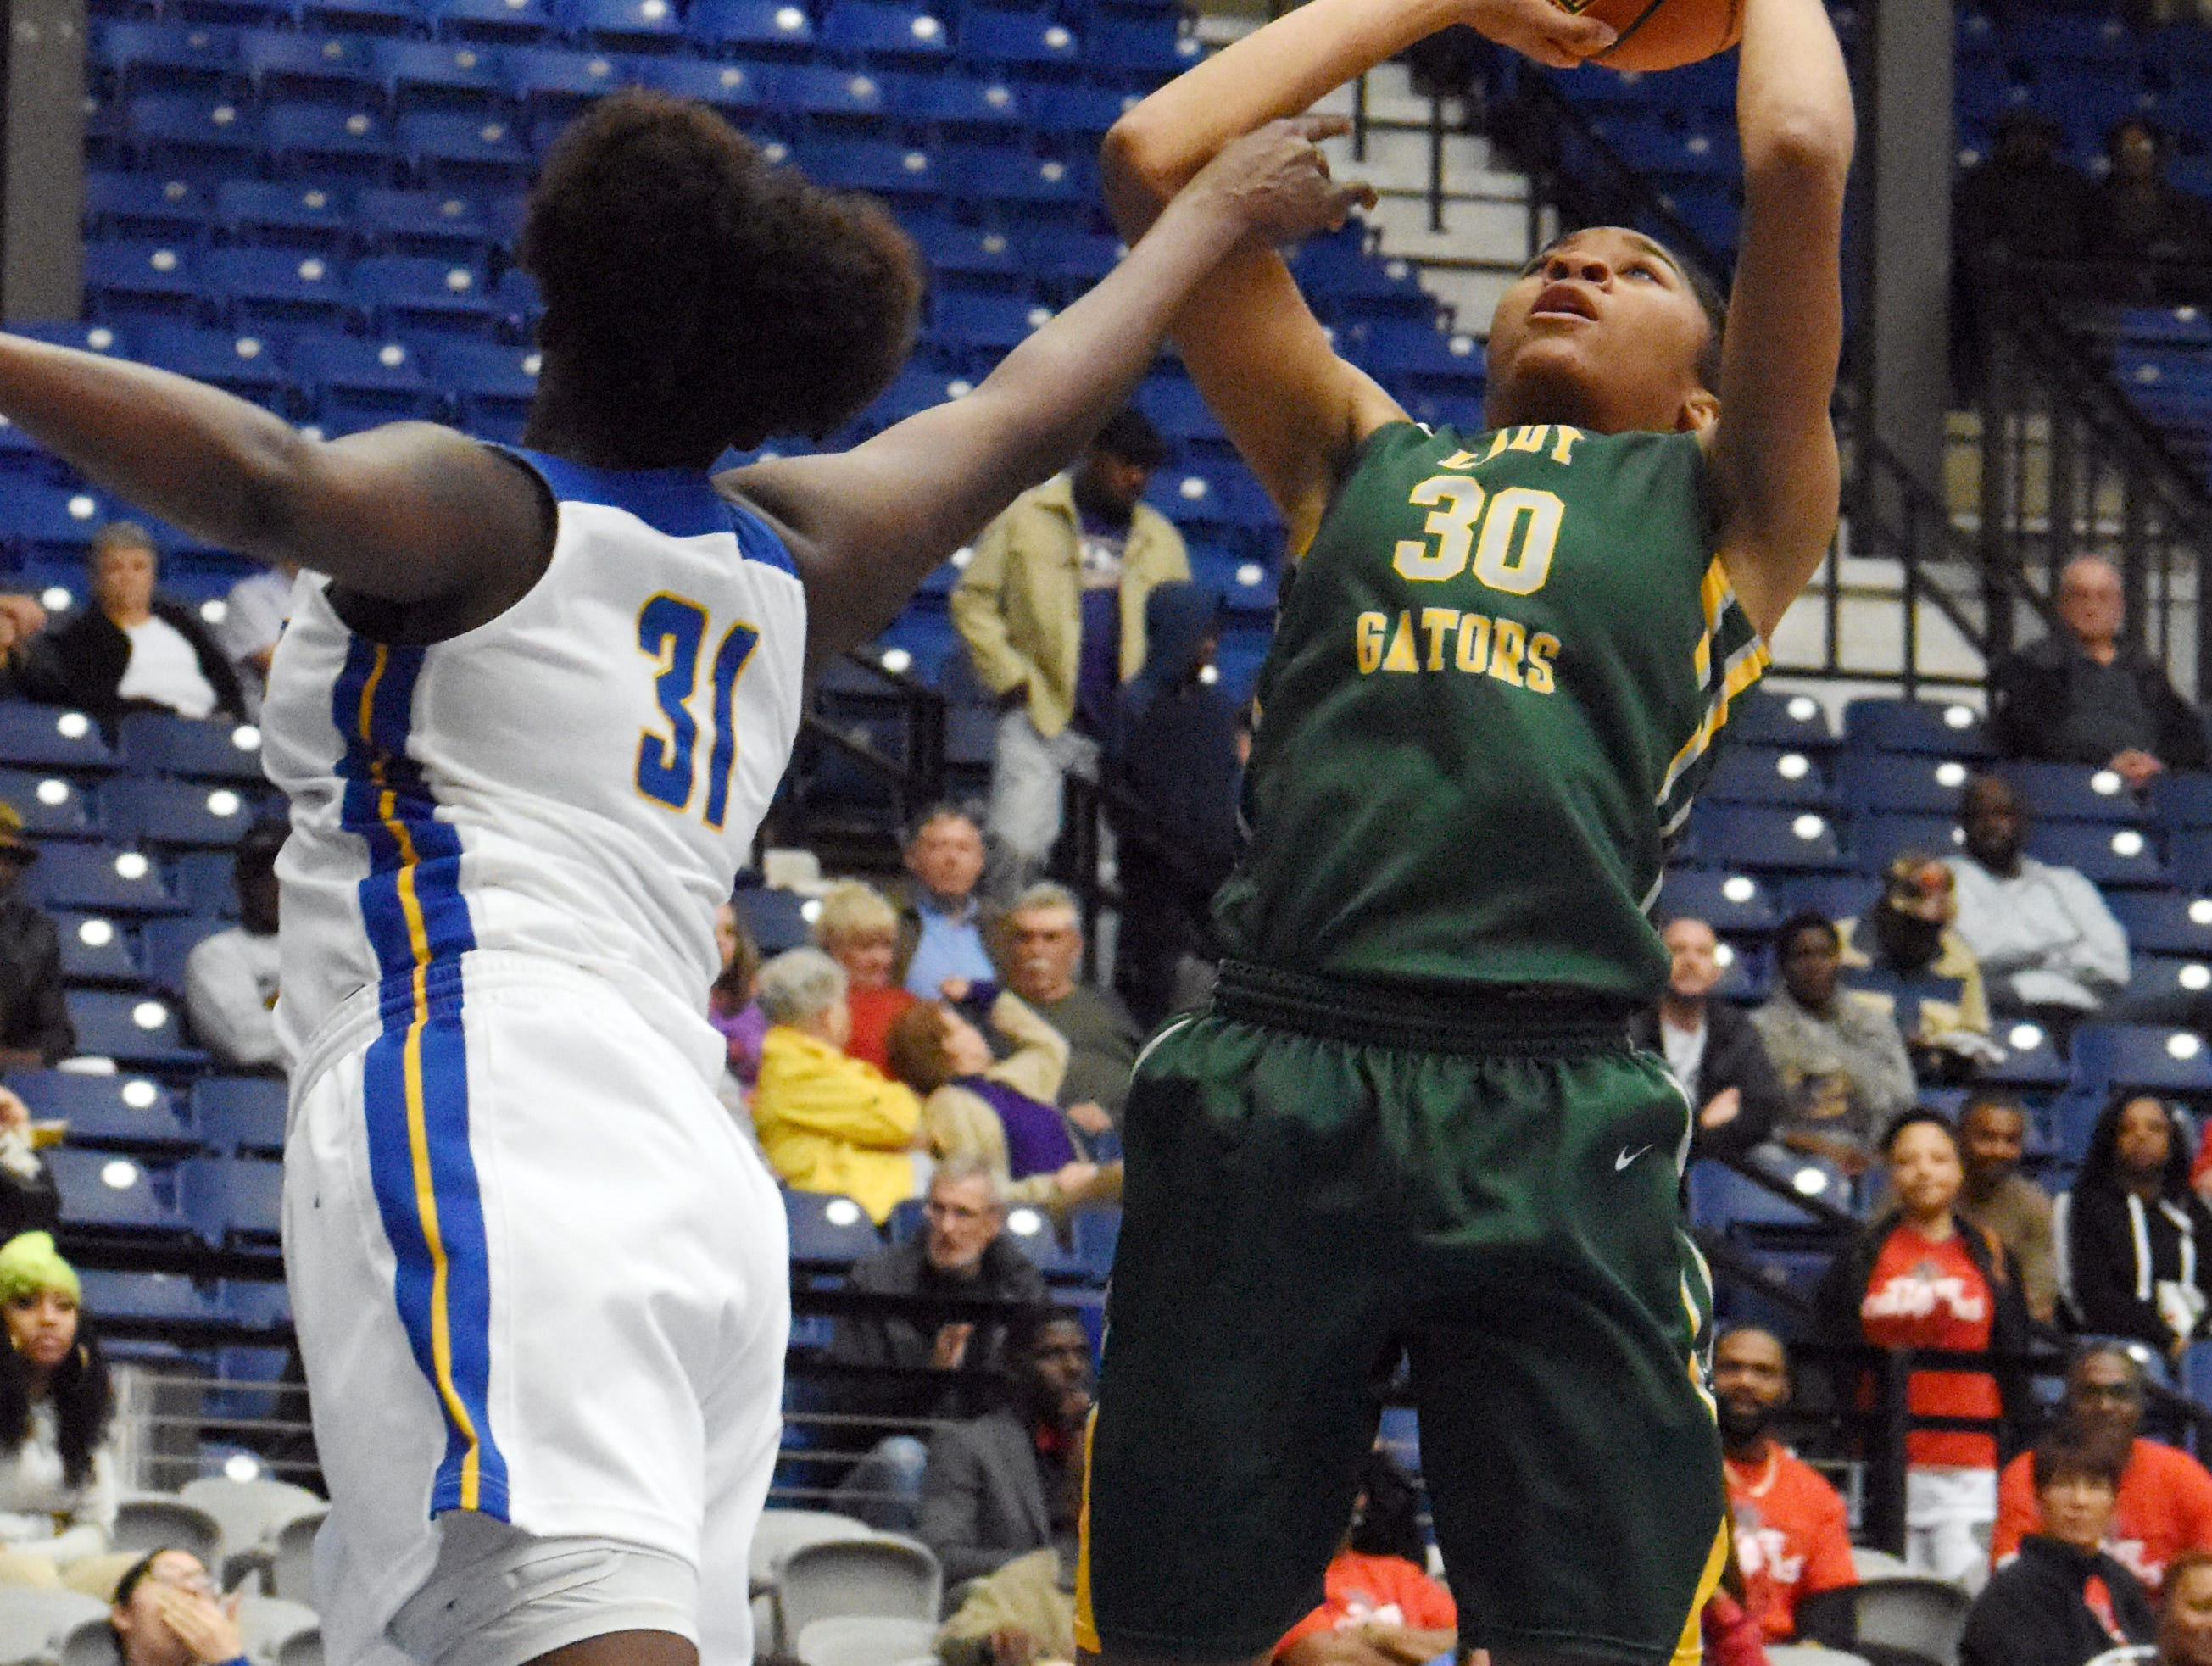 Captain Shreve's Kiayra Ellis (30, right) goes for two against East Ascension in the Class 5A semifinal game of the 2019 Allstate Sugar Bowl 2019 Louisiana High School Athletic Association Girl's State Basketball Marsh Madness held Thursday, Feb. 28, 2019 at the Rapides Parish Coliseum in Alexandria.